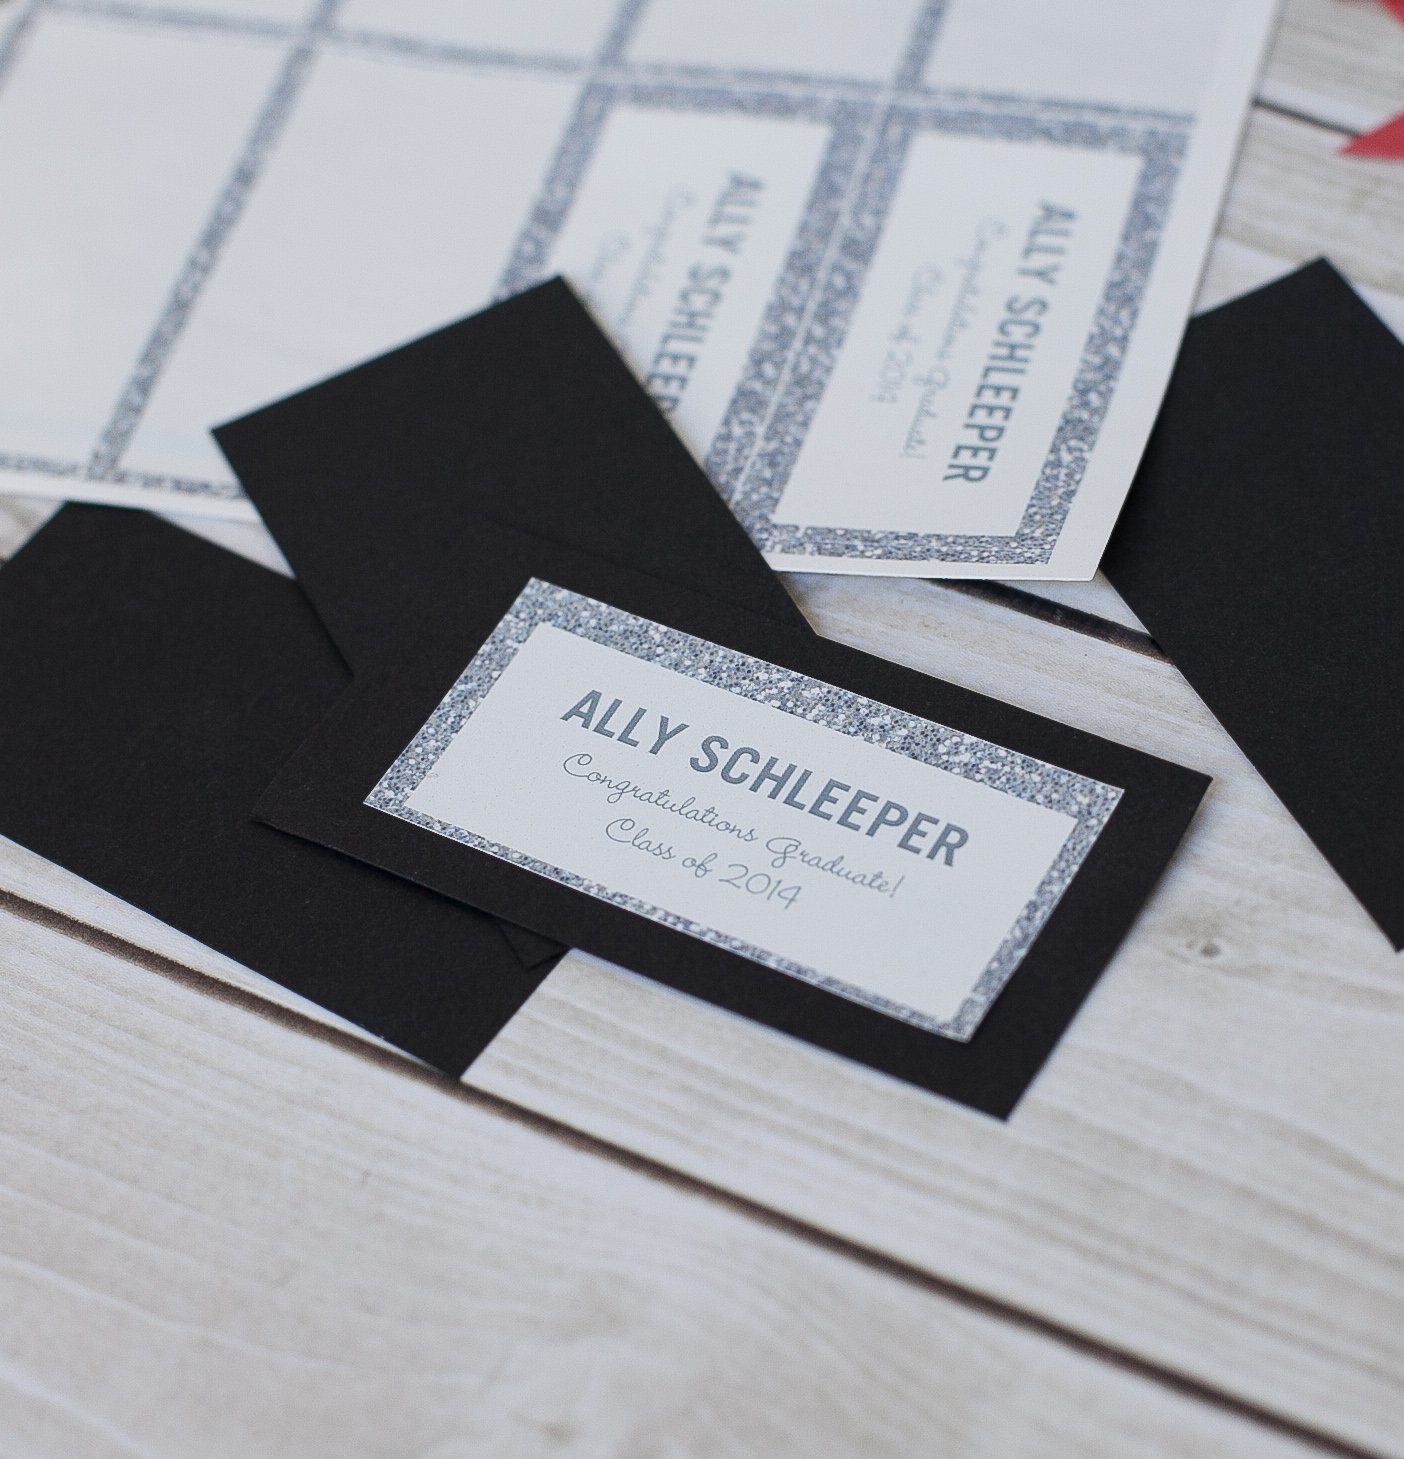 Fold In Half Table picture on graduation party favor free printables tutorial and diy with Fold In Half Table, Folding Table f84f7065bbb92563d8f39f97a3504c7f